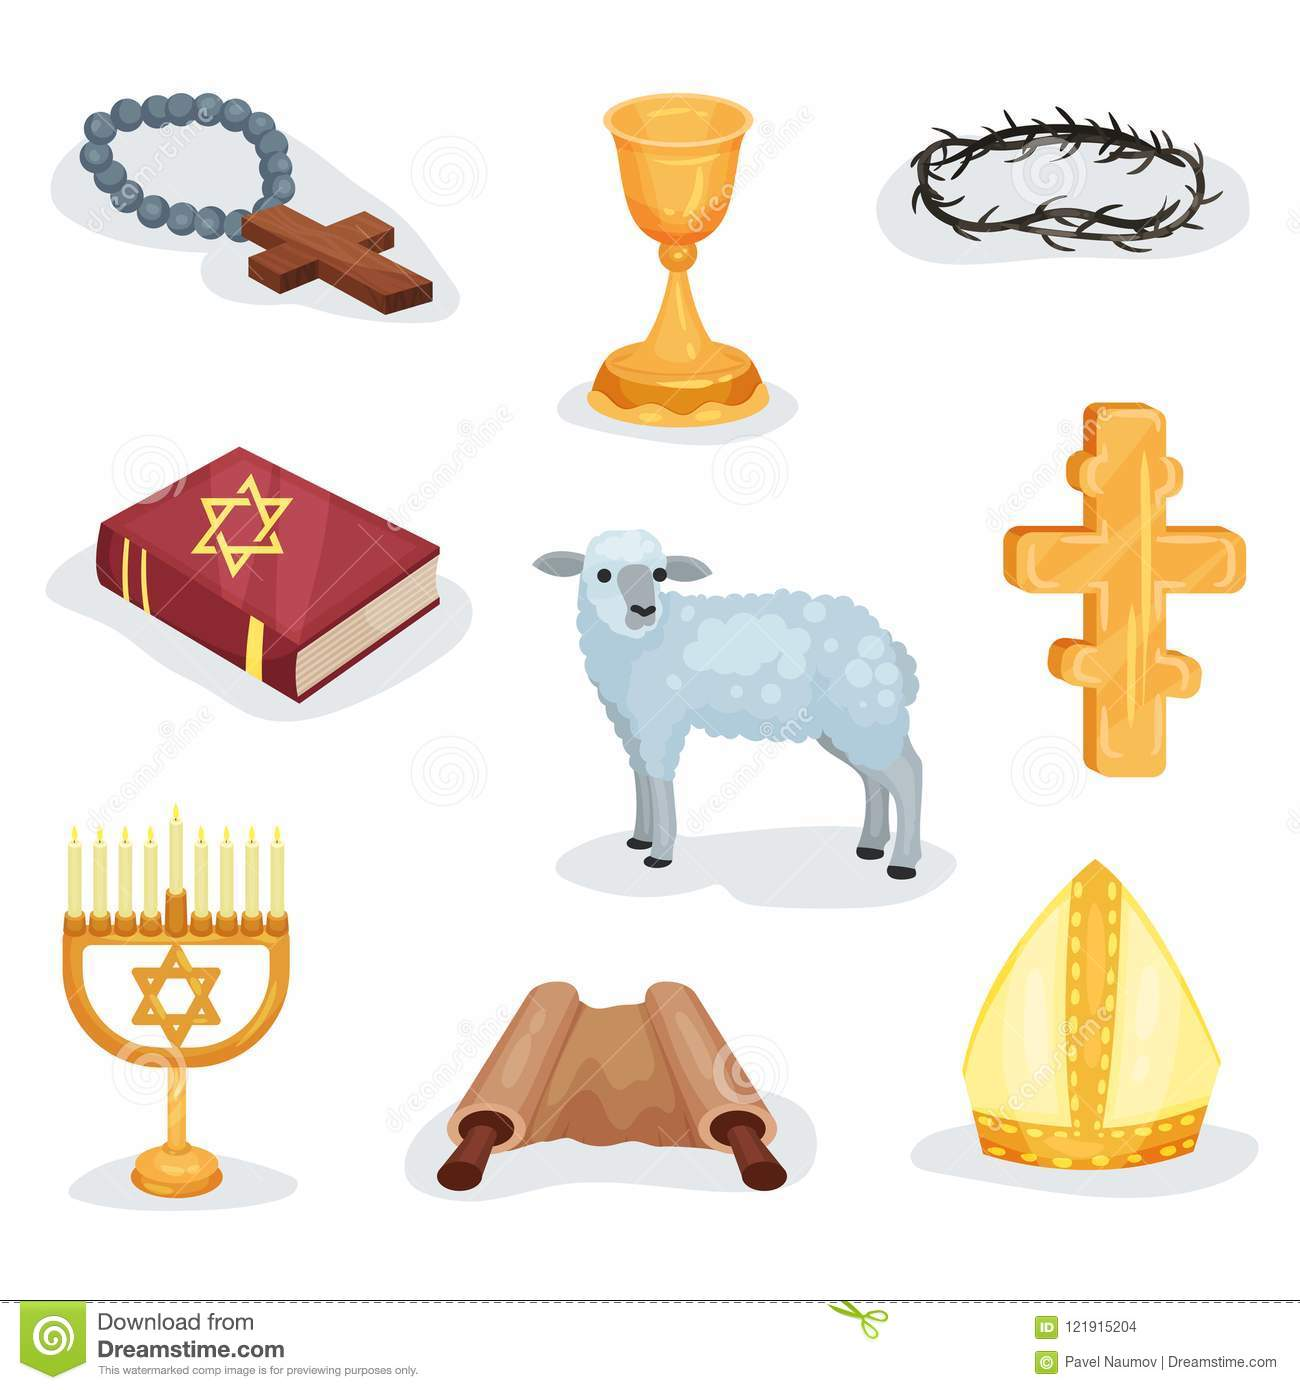 Flat Vector Set Of Religious Symbols And Objects Jewish Prayer Book